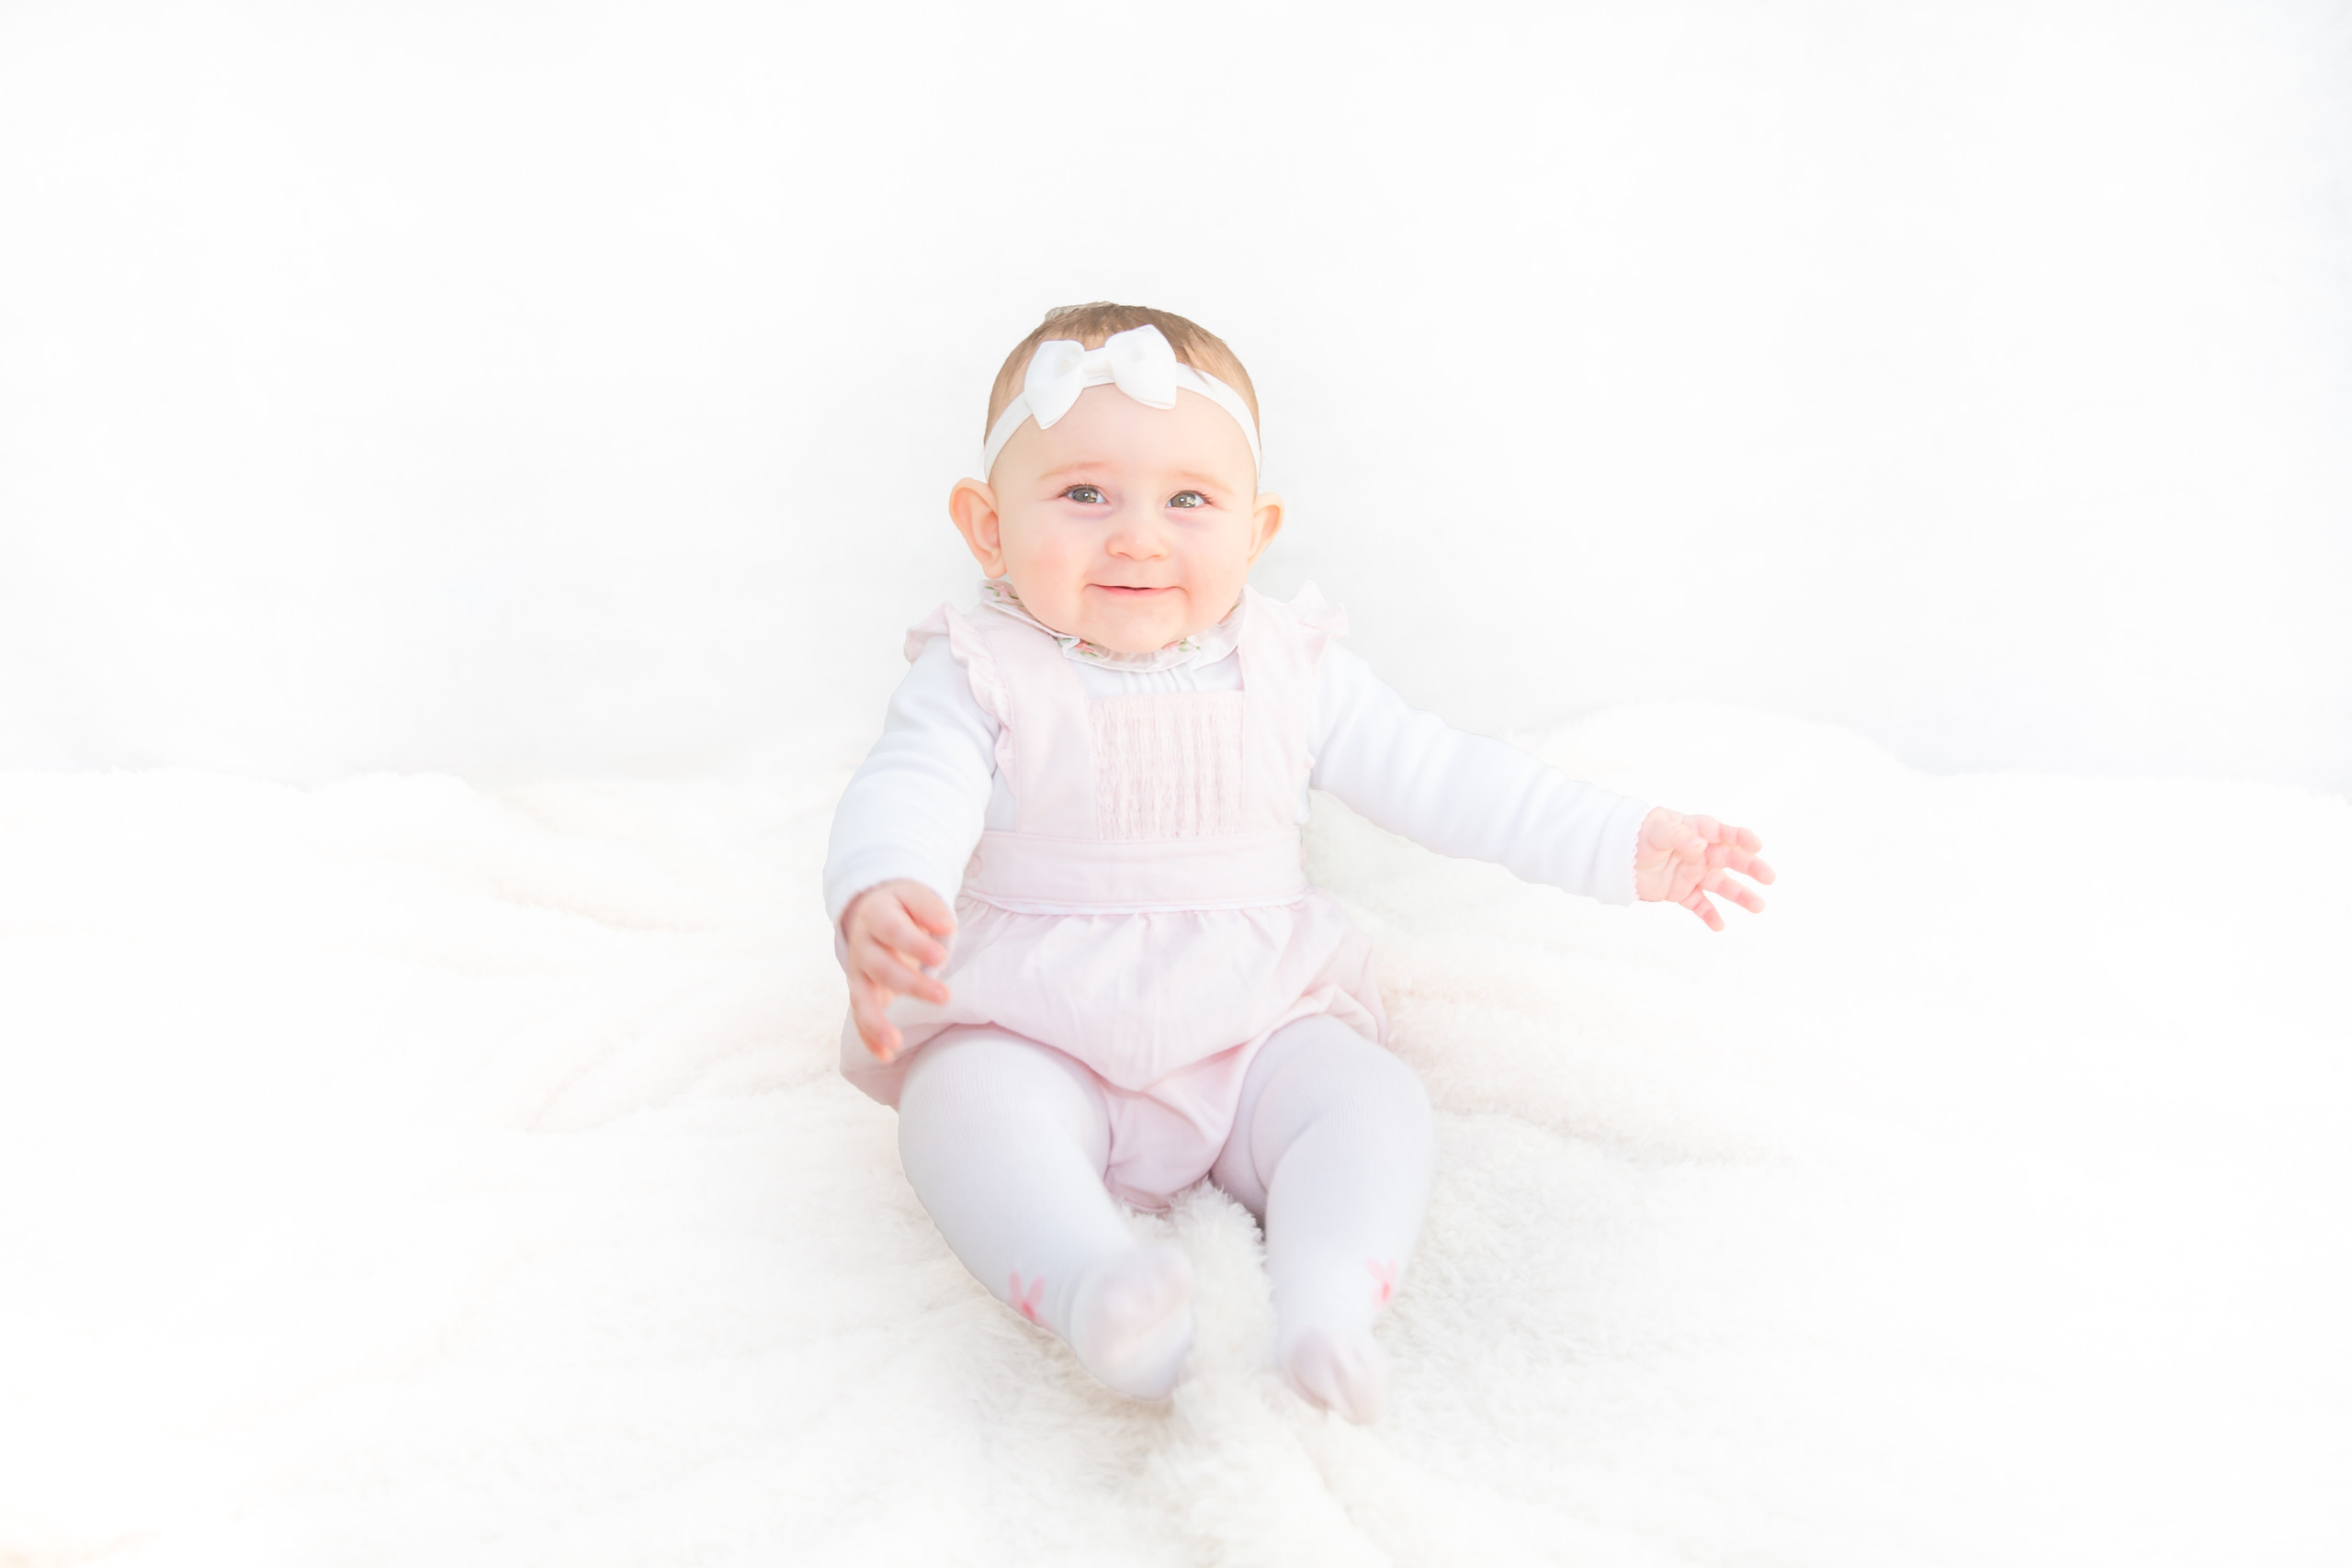 Swansea Family Portrait Colour Photography. Photographer also covers the Gower, Carmarthenshire, Llanelli and South Wales for Babies, Baby and newborn Photo